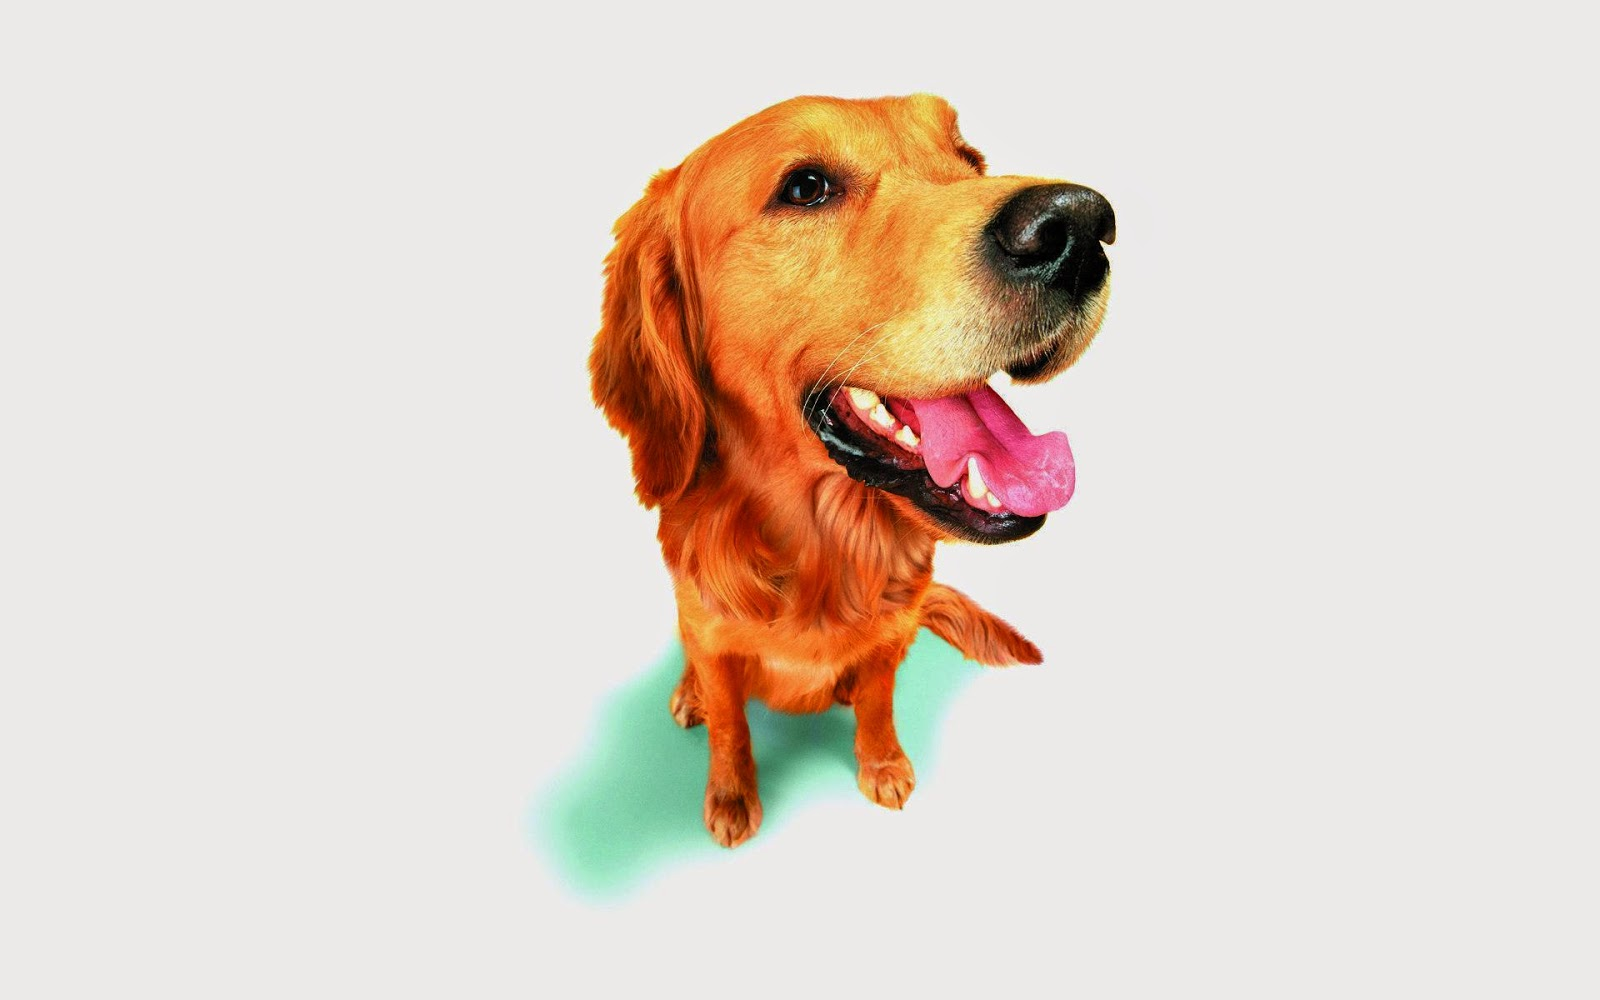 pet supplies online Pet supplies : free shipping on orders over $45 at overstockcom - your online pet supplies store get 5% in rewards with club o.